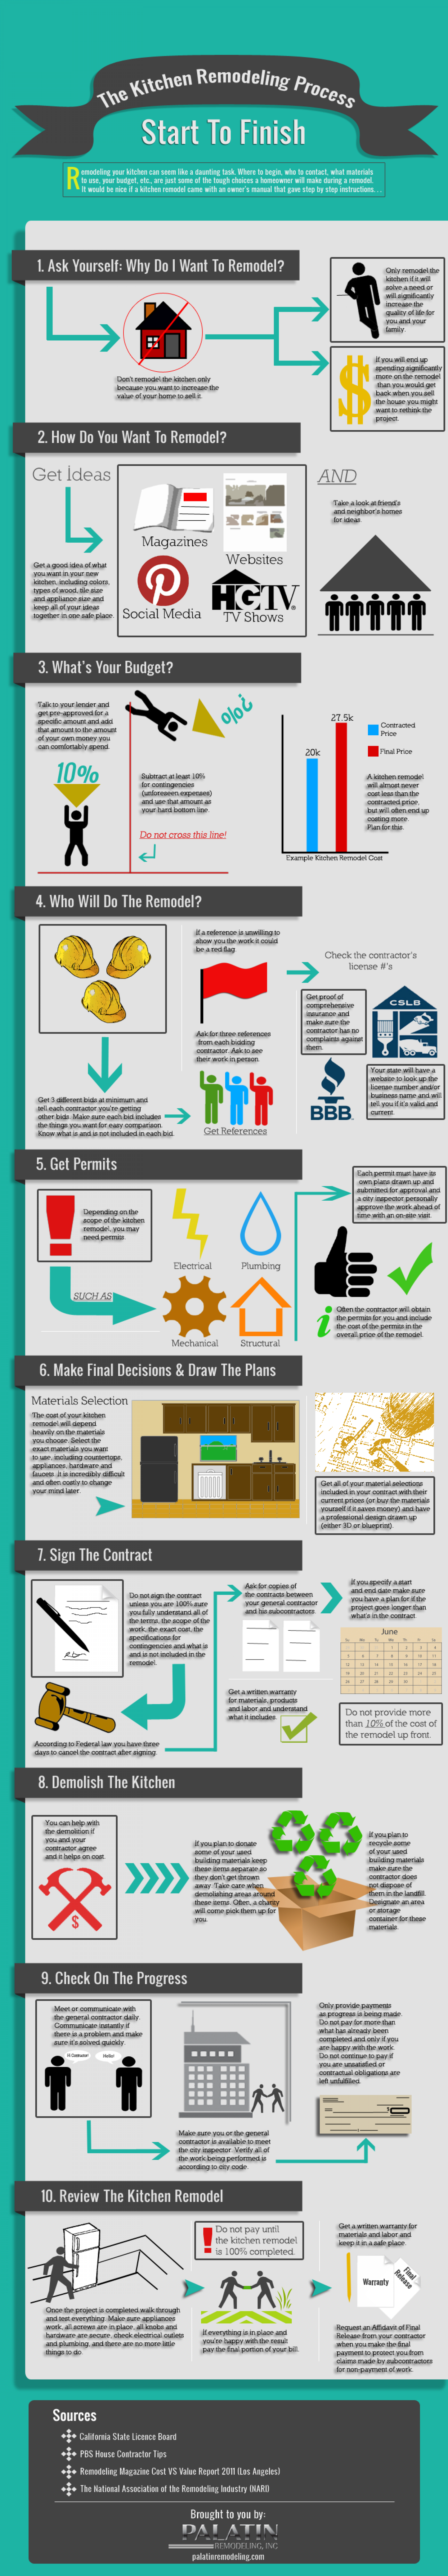 The Kitchen Remodeling Process: Start to Finish Infographic